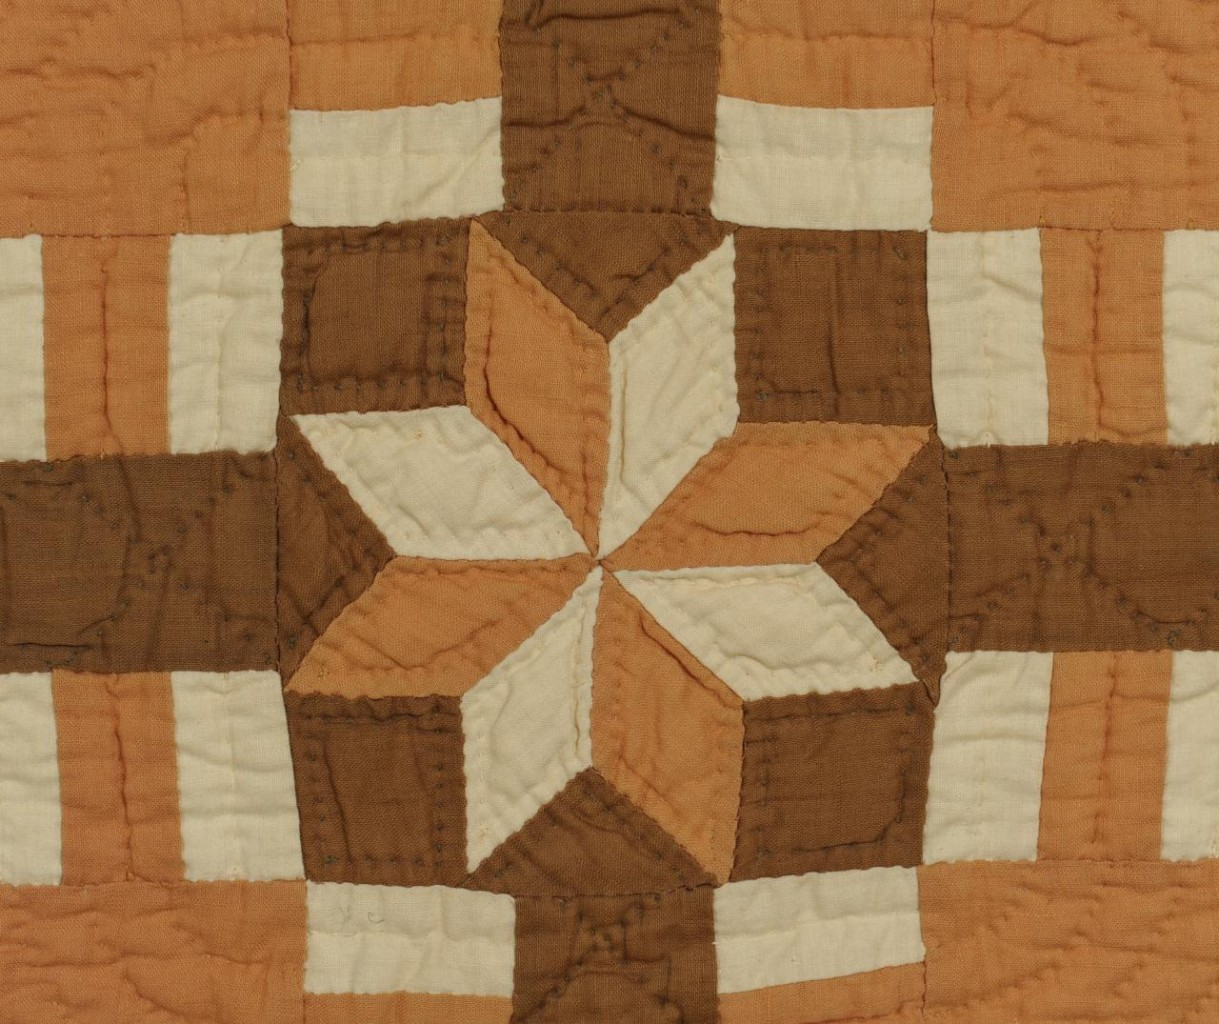 Lot 586: 19th C. Middle TN Quilt, New York Beauty Variant